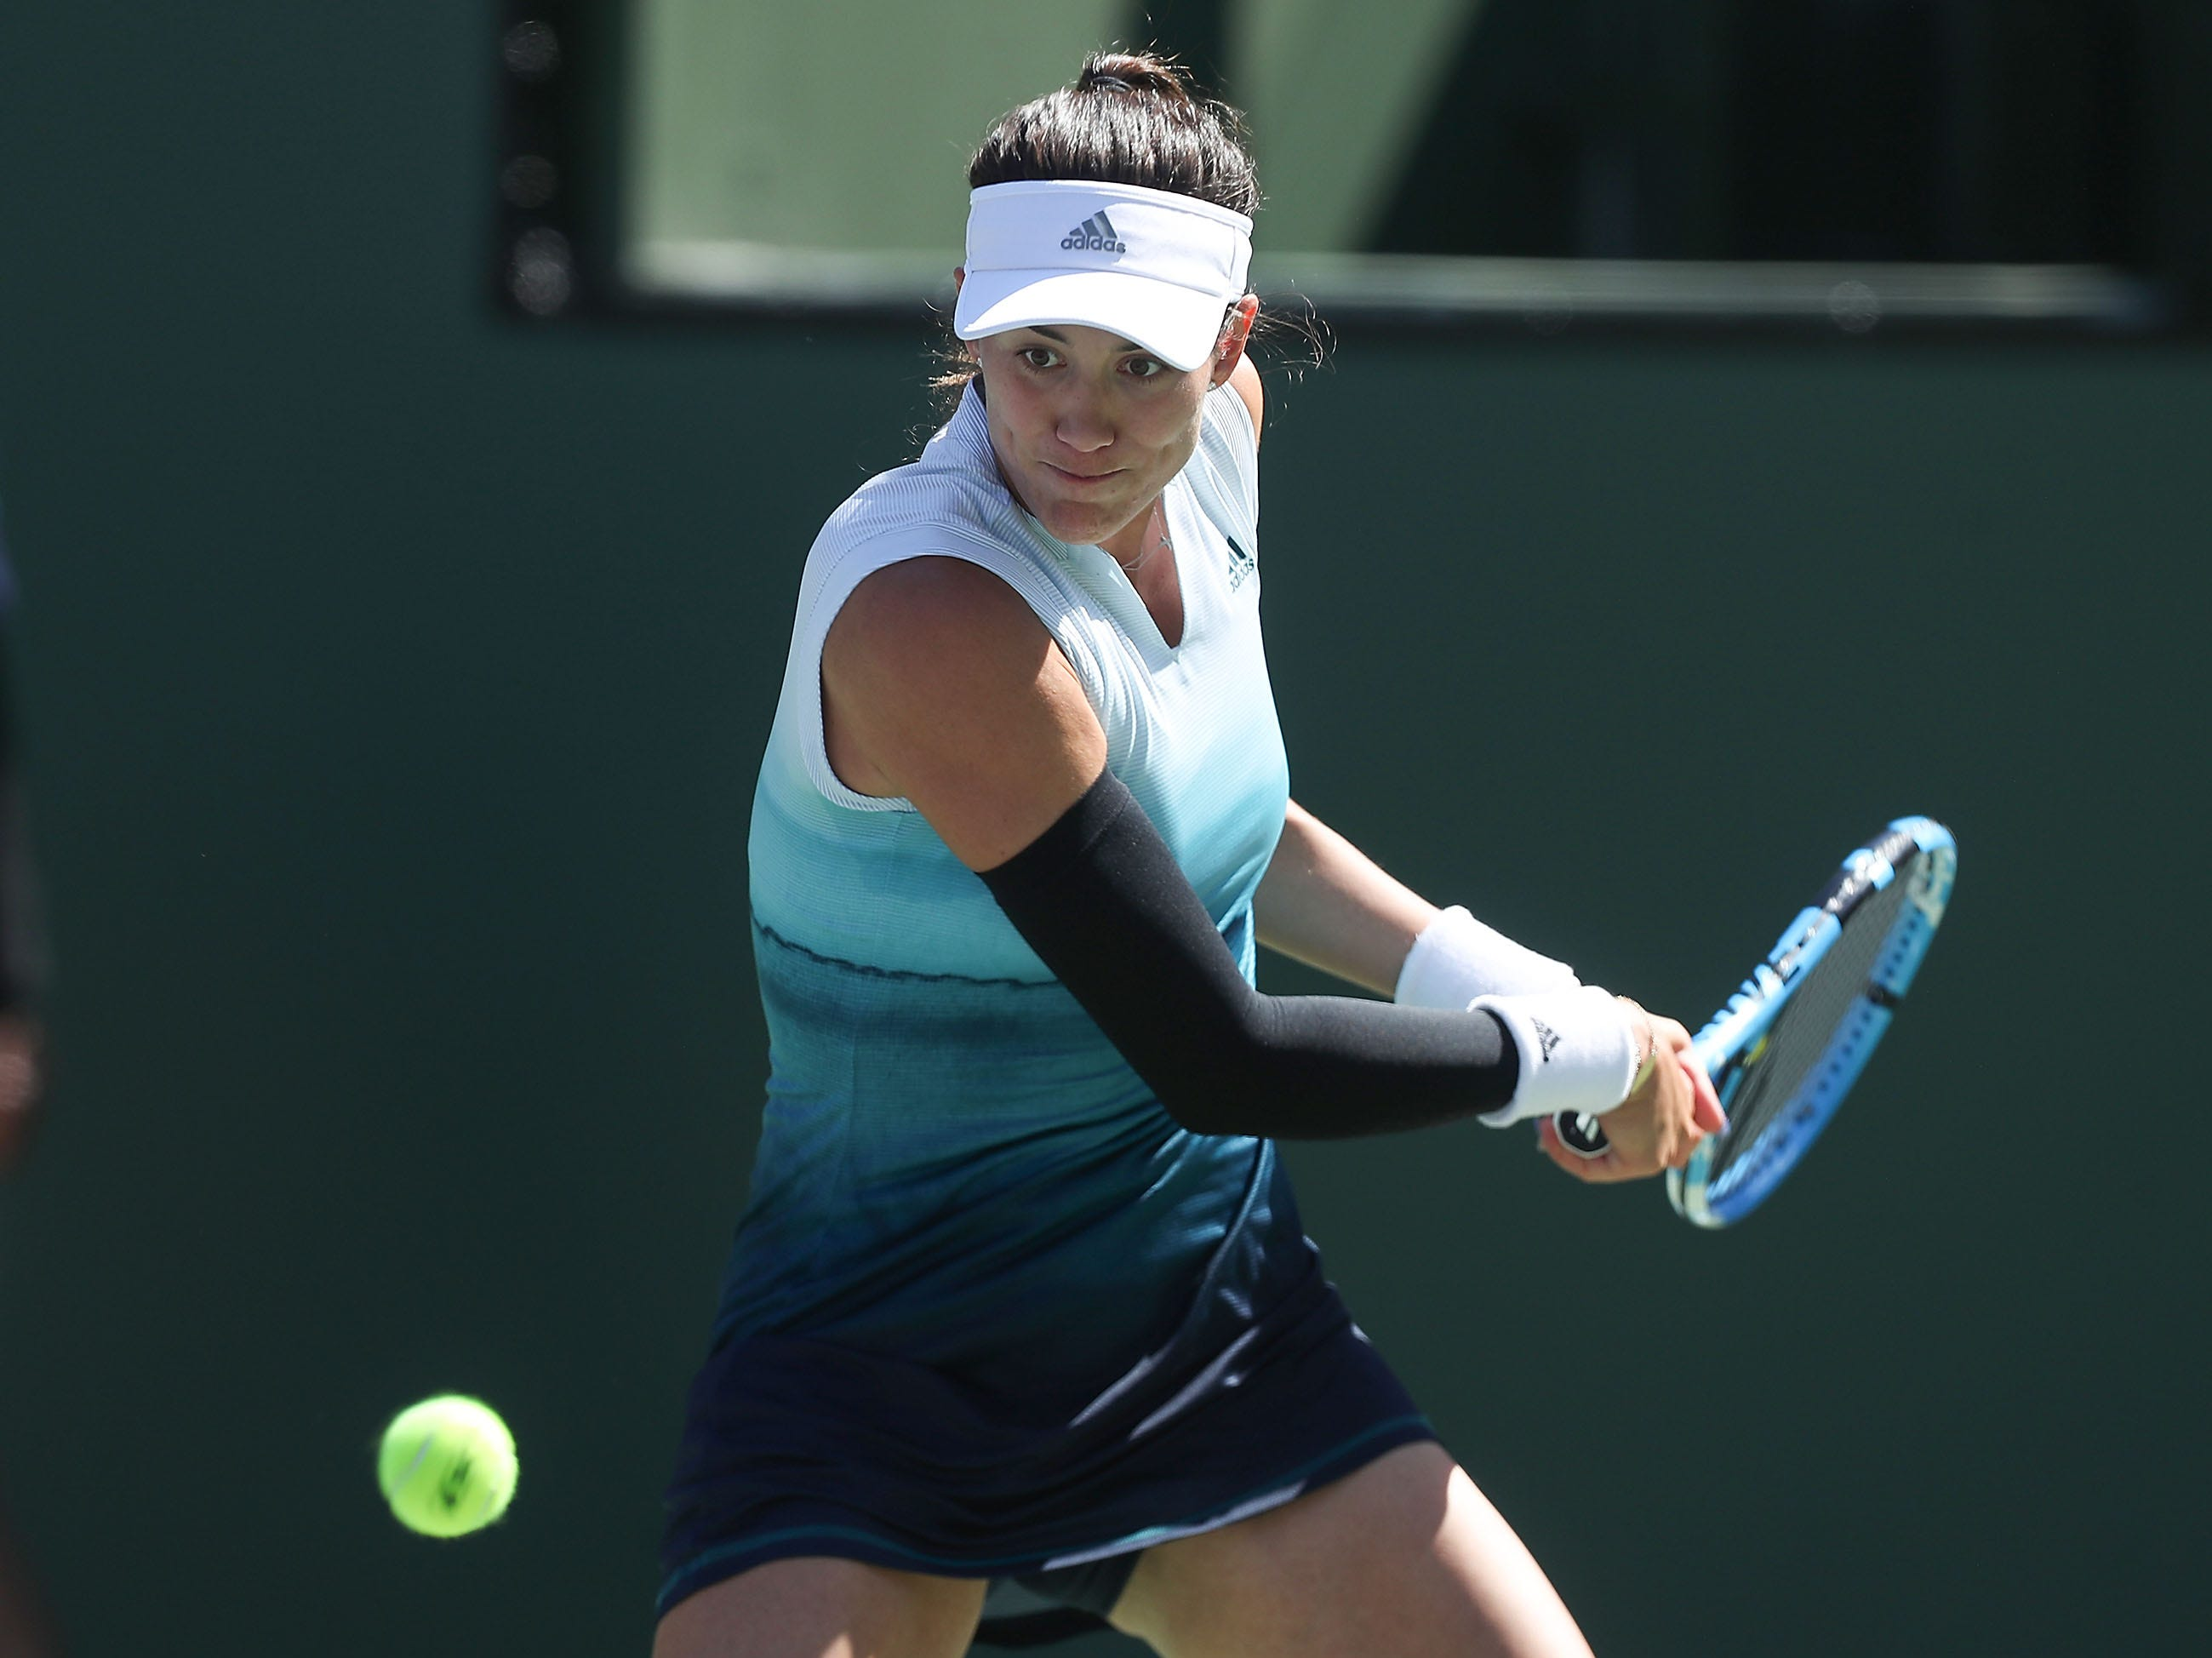 Garbine Muguruza hits a return during her loss to Bianca Andreescu at the BNP Paribas Open in Indian Wells, March 13, 2019.